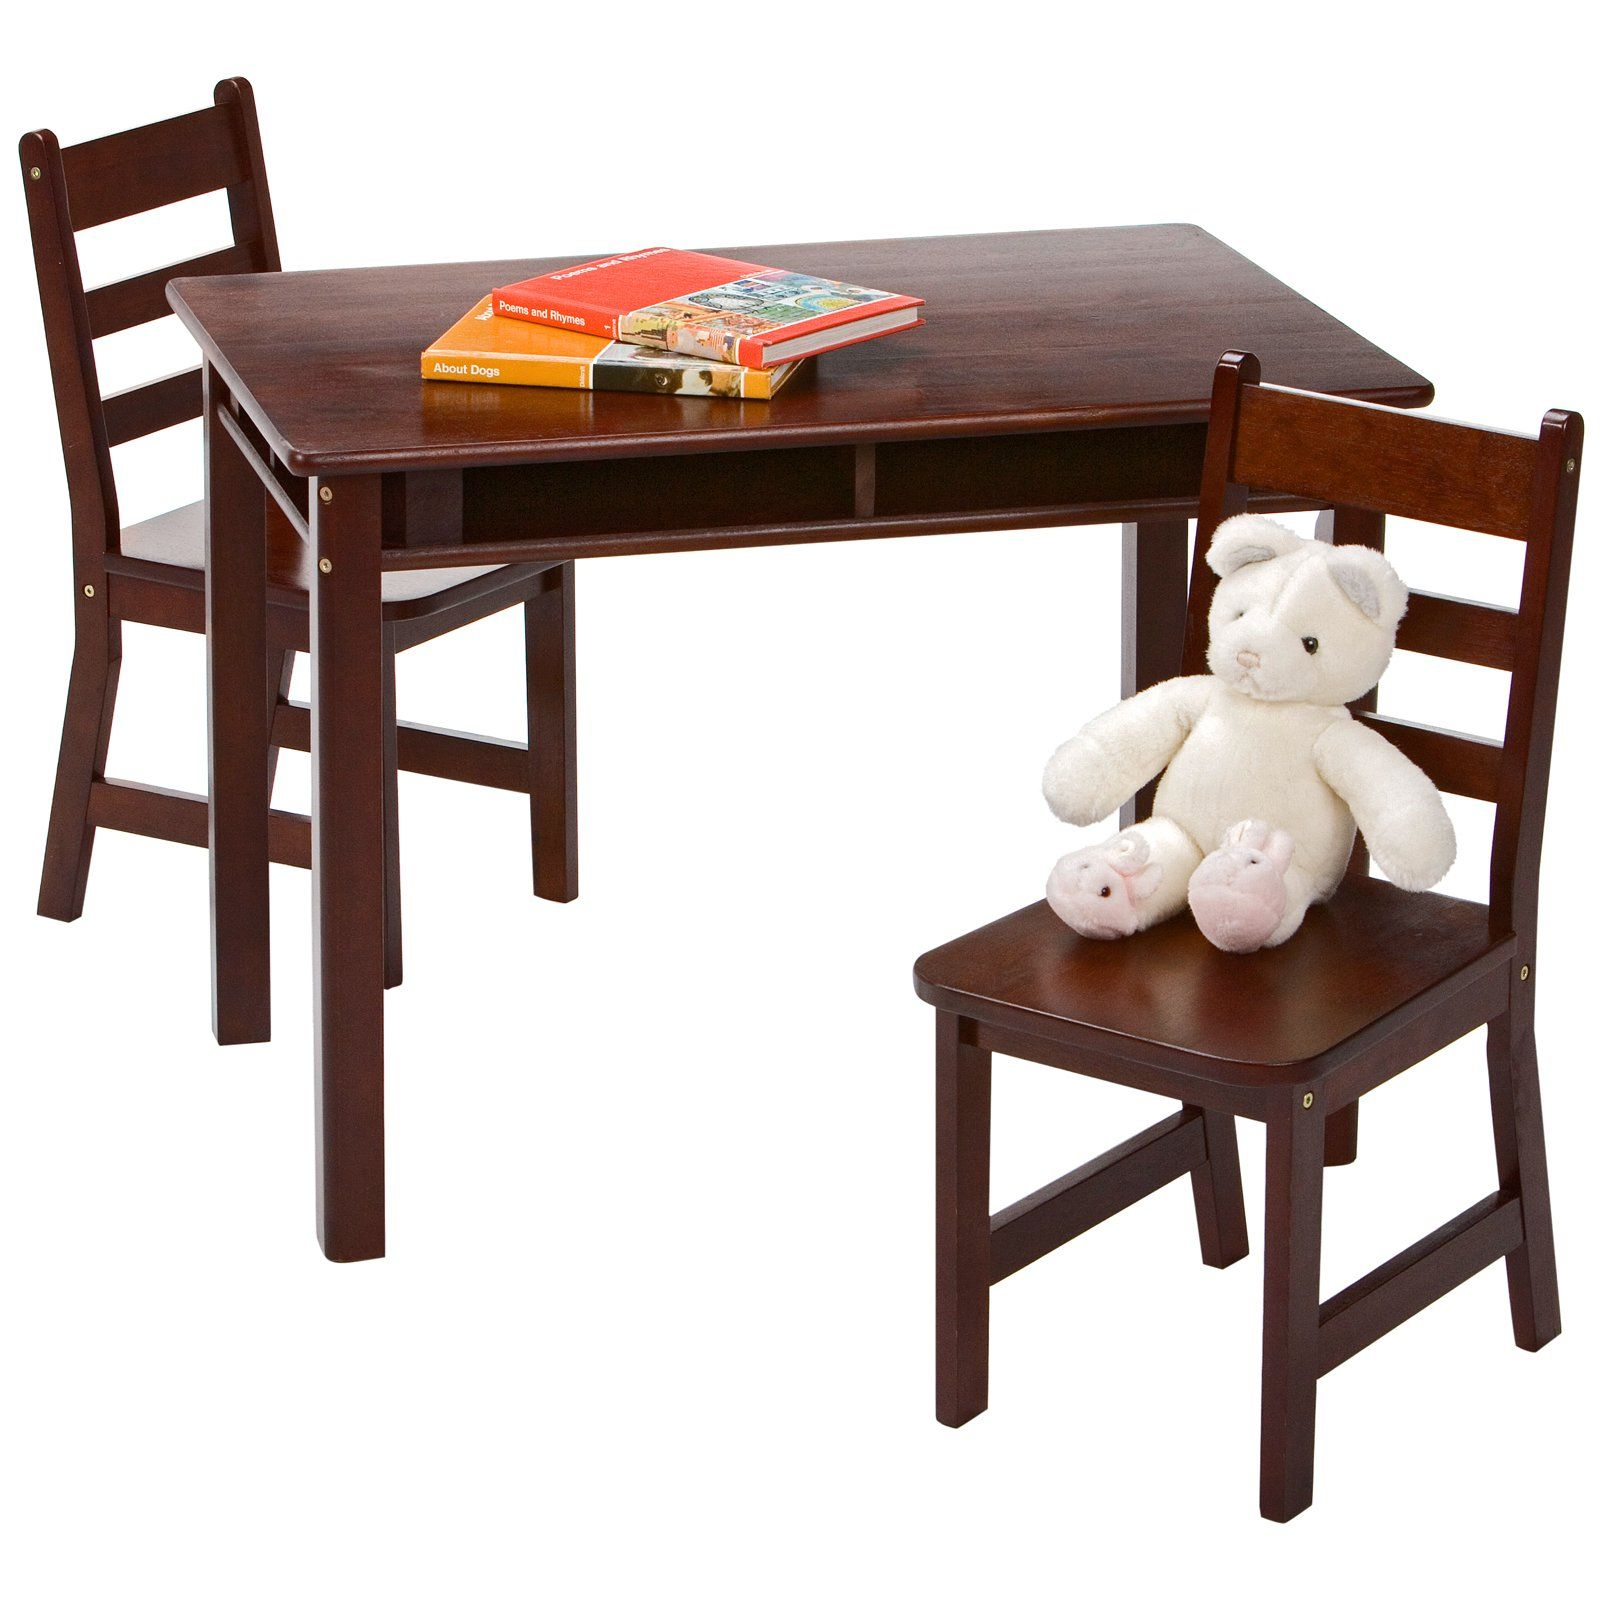 Lipper Childrens Rectangular Table And Chair Set Crafty